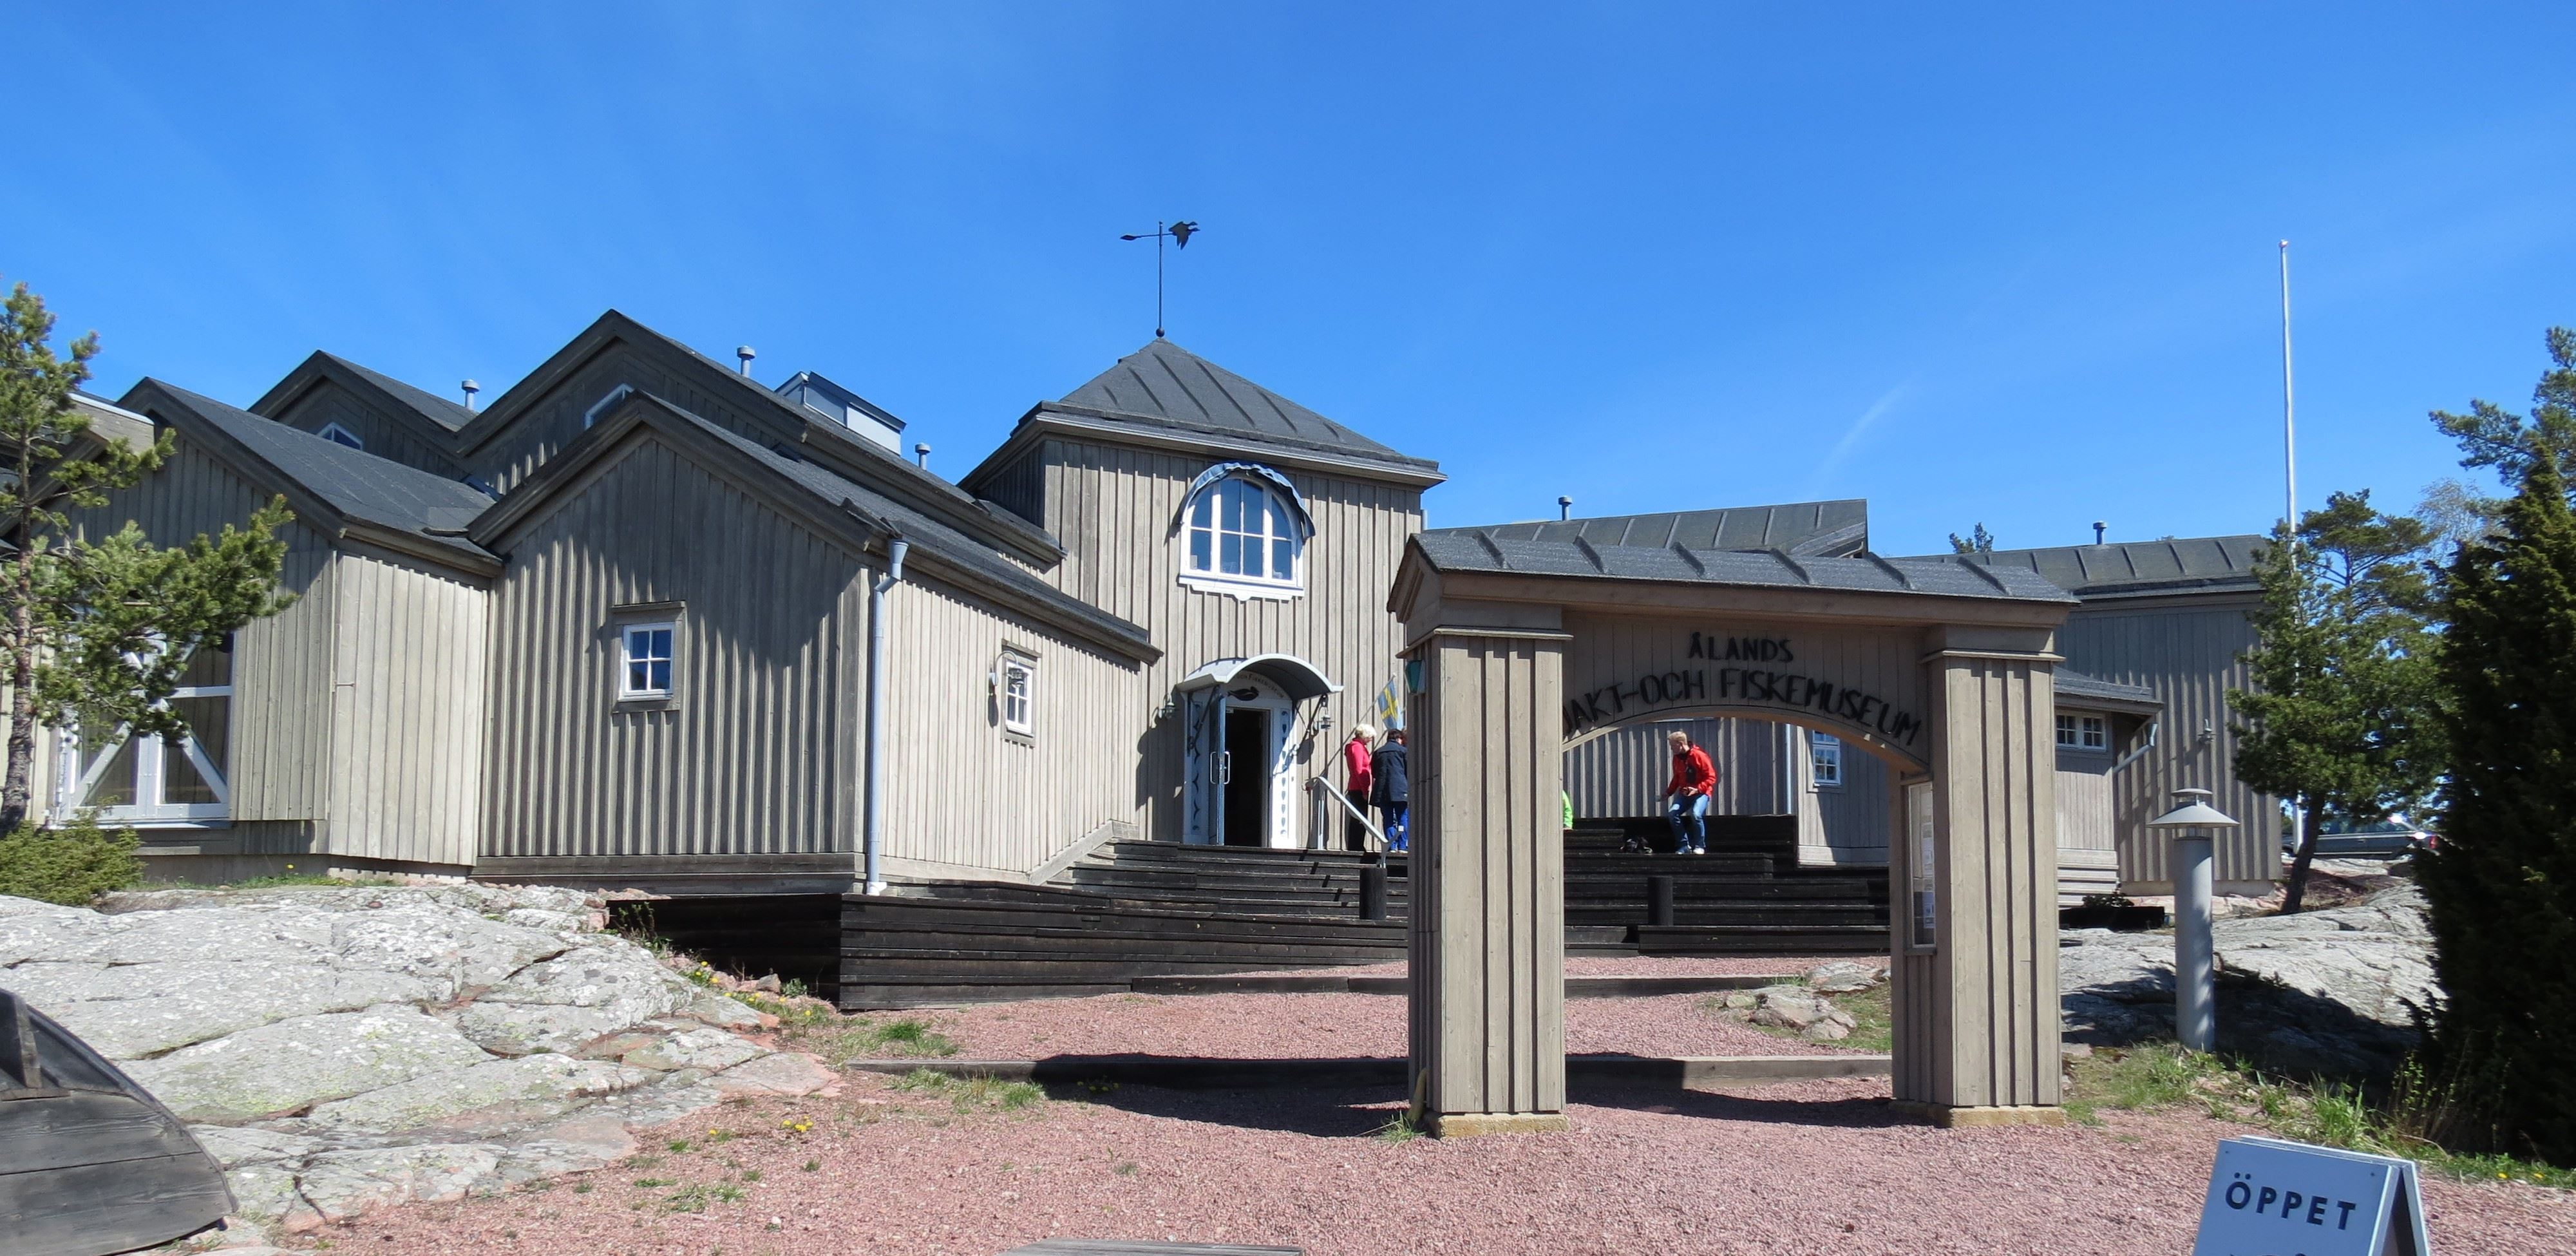 Åland Hunting & fishing museum - Entrance